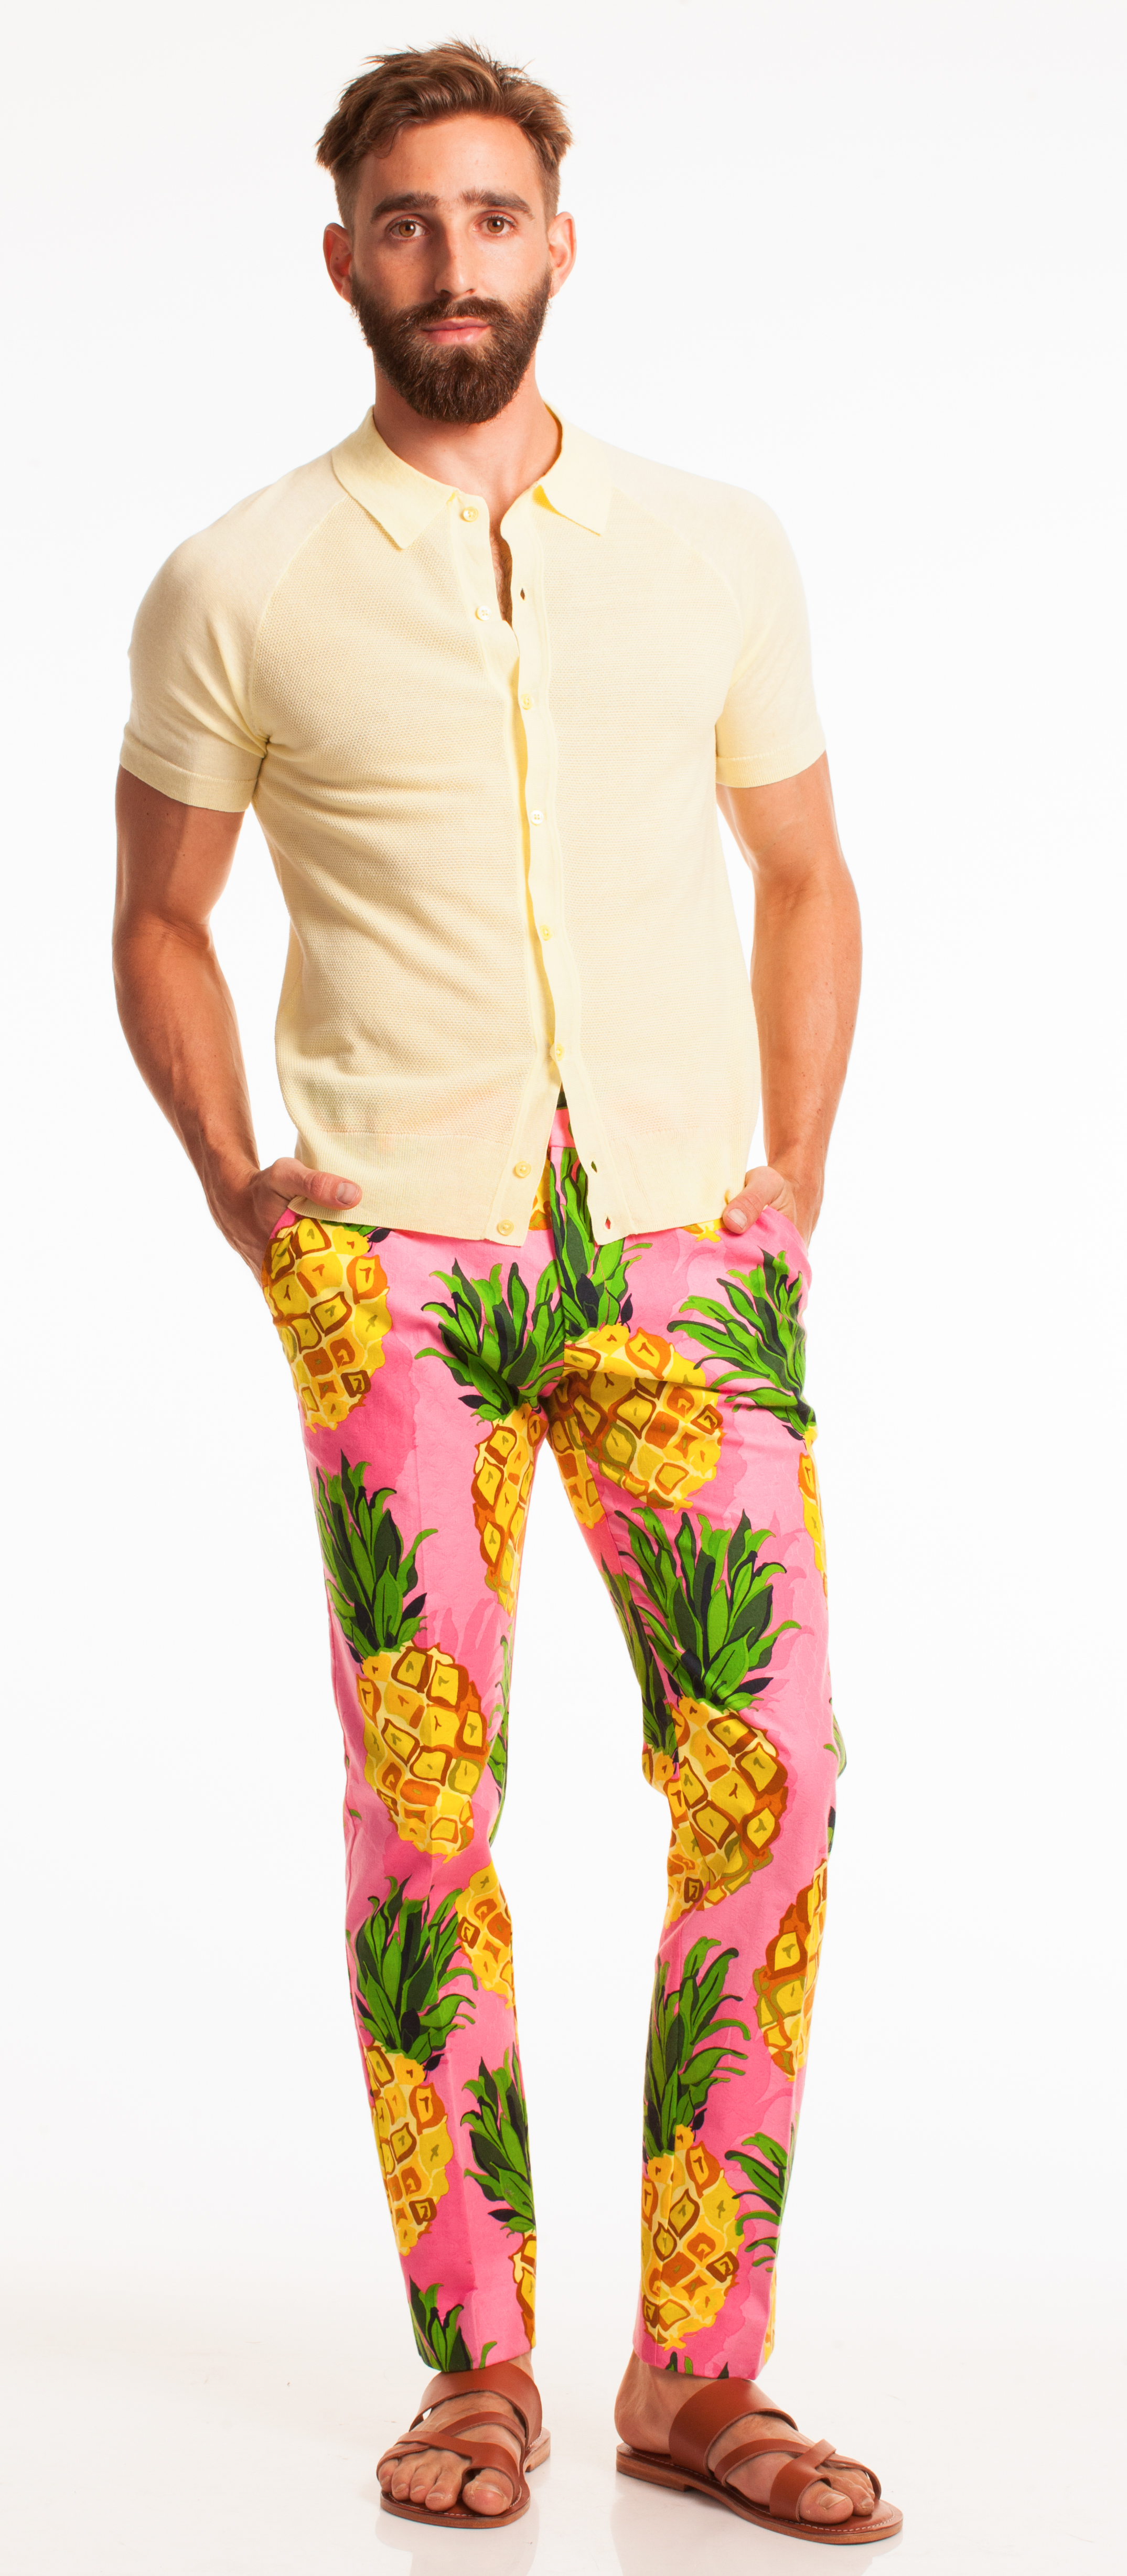 That's Ripe! Fruit-inspired fashion for a juicier summer